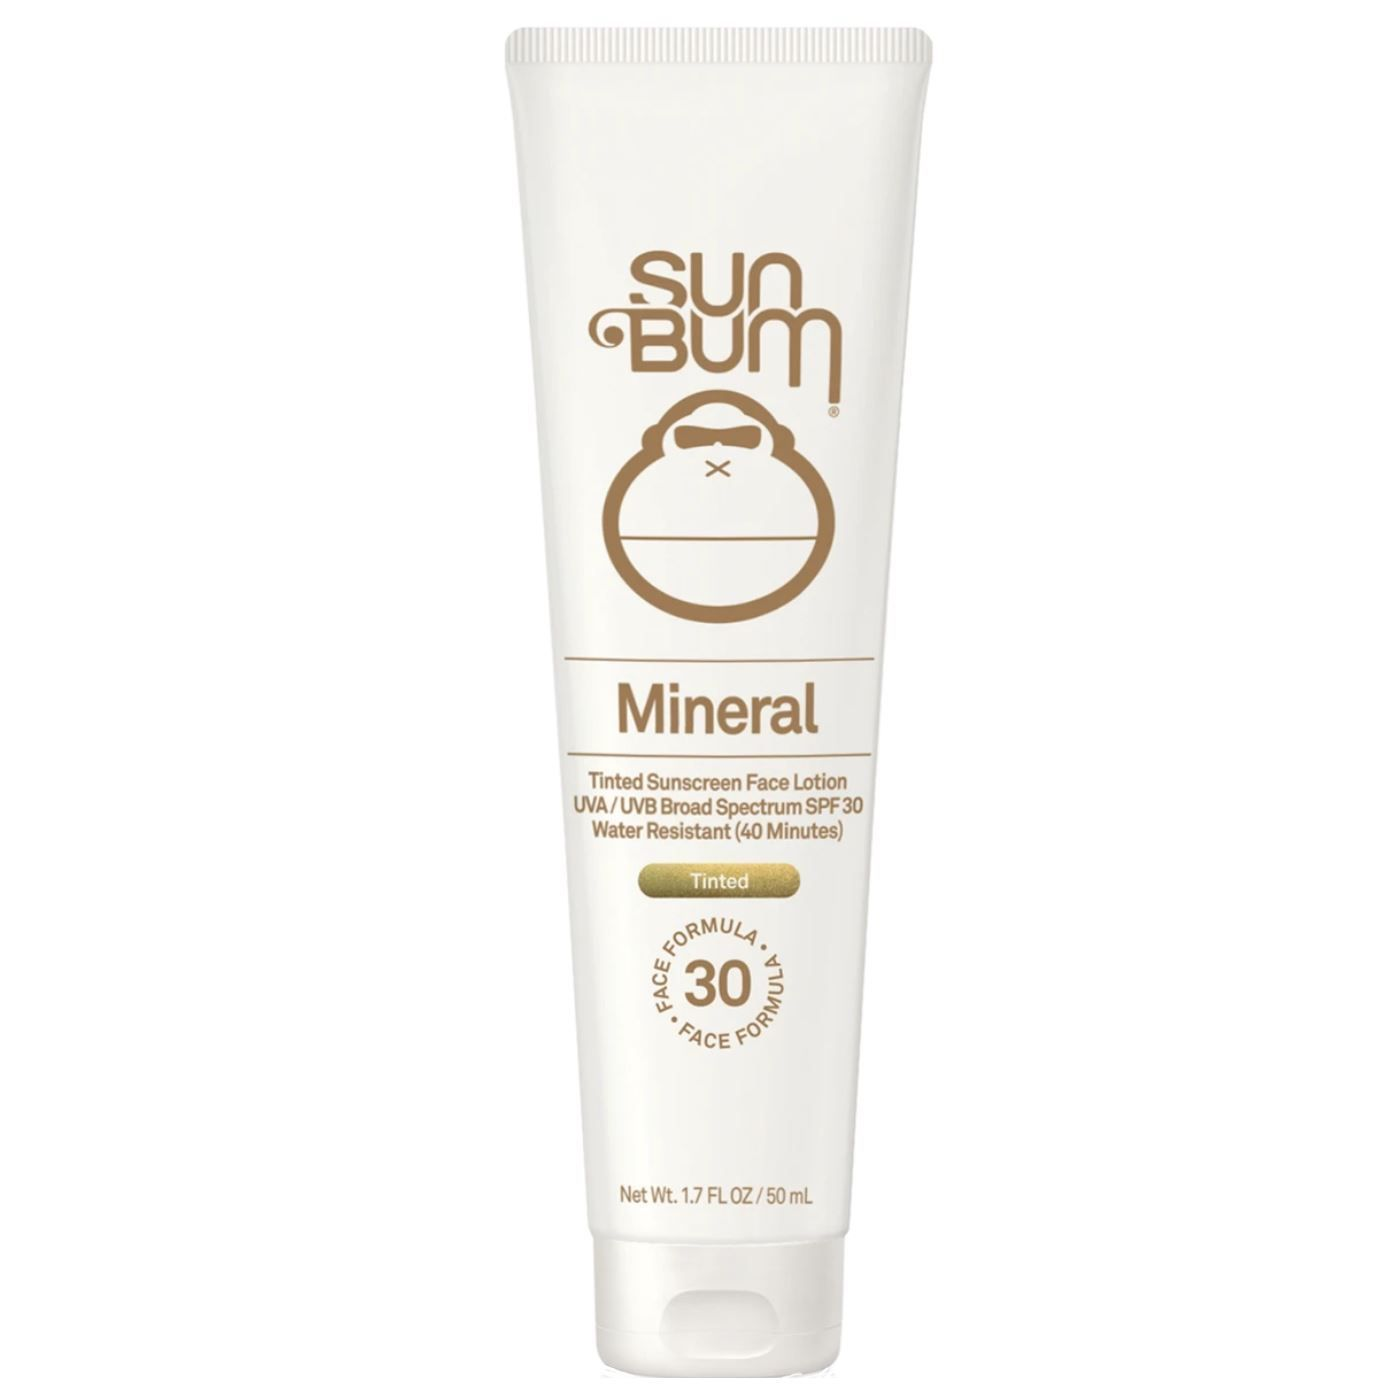 Mineral Tinted Face Sunscreen - SPF 30